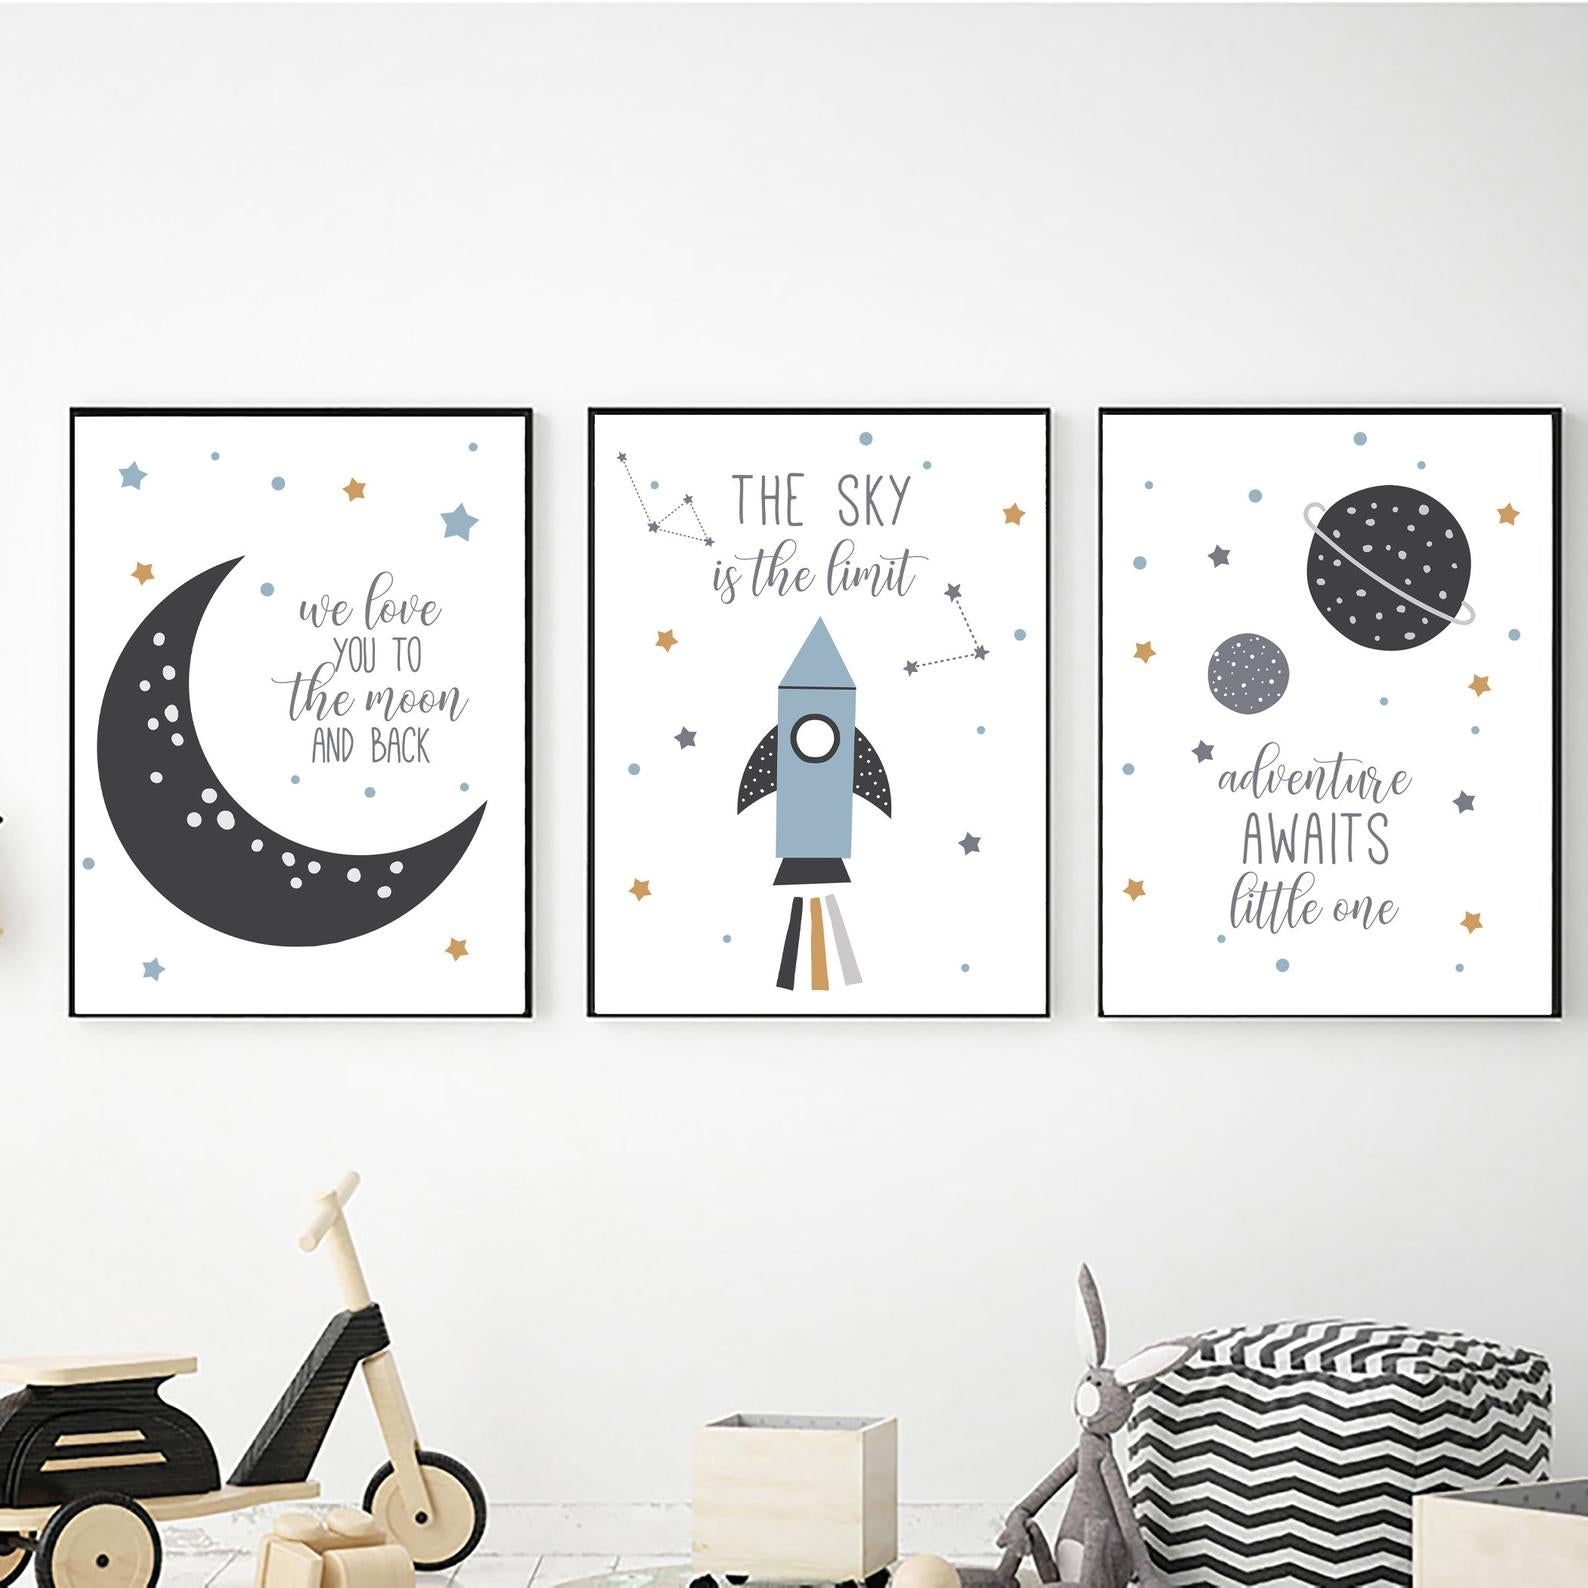 Space Adventure Awaits freeshipping - Beautiful Spaces Store